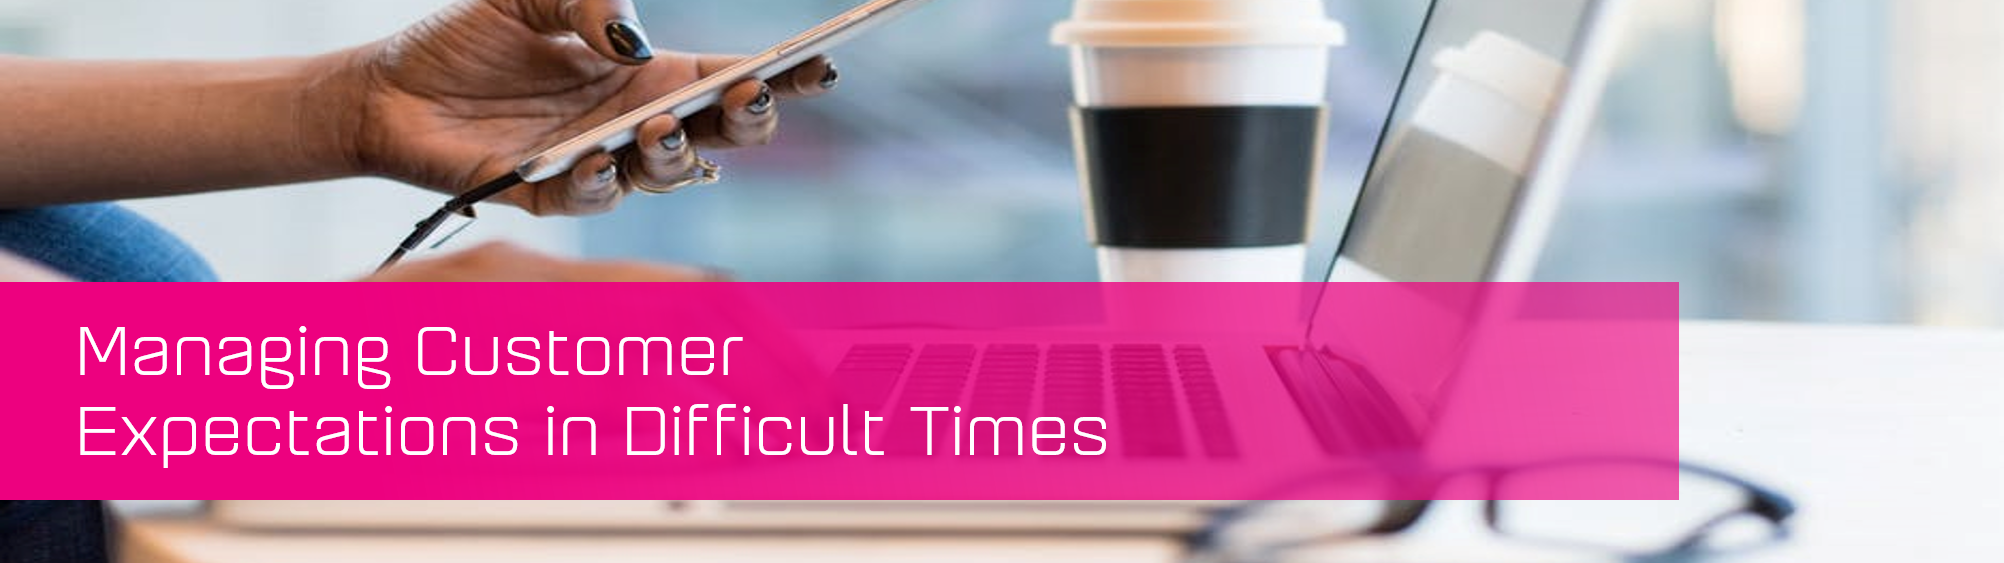 KCS SA - Blog - Managing customers during difficult times banner